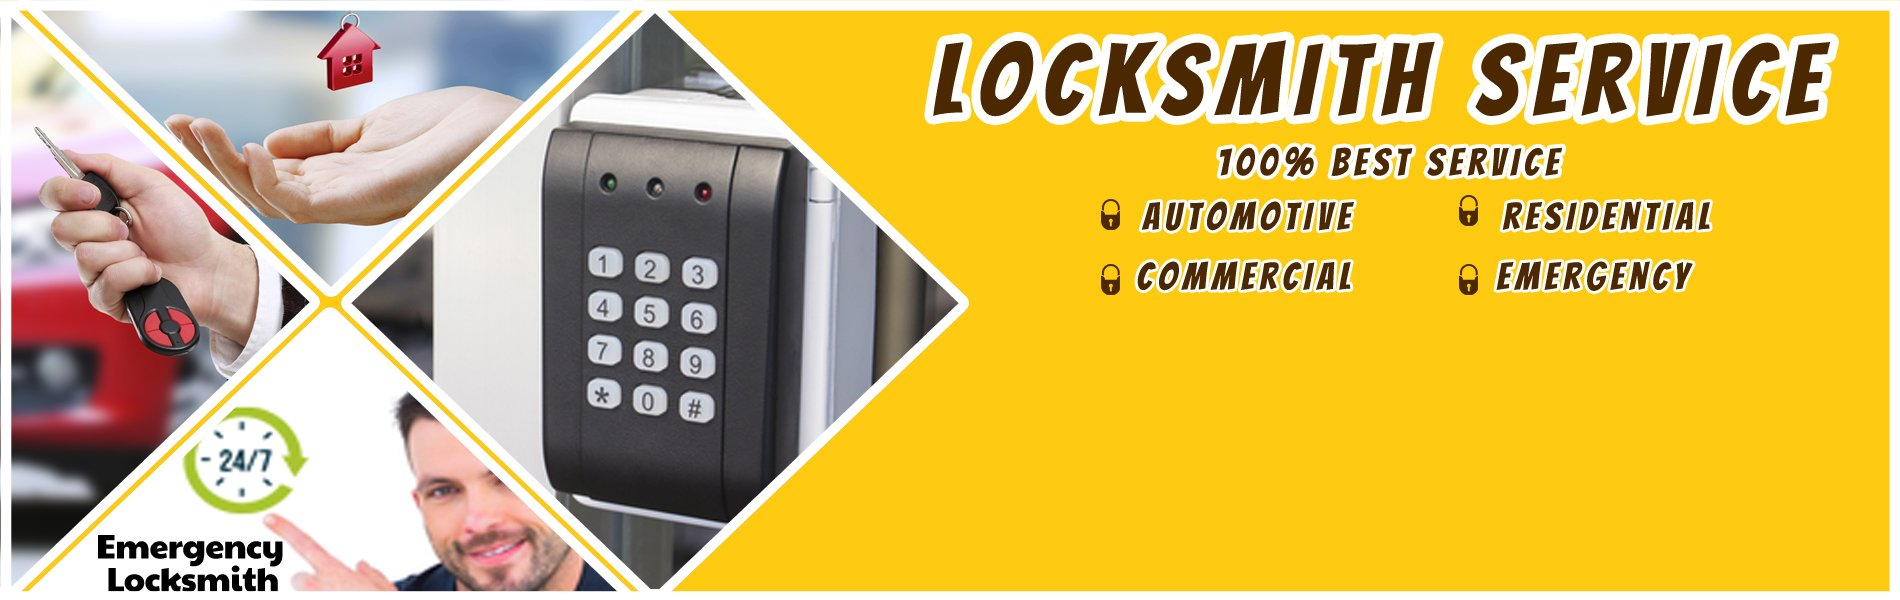 Seattle Advantage Locksmith Seattle, WA 206-317-8079